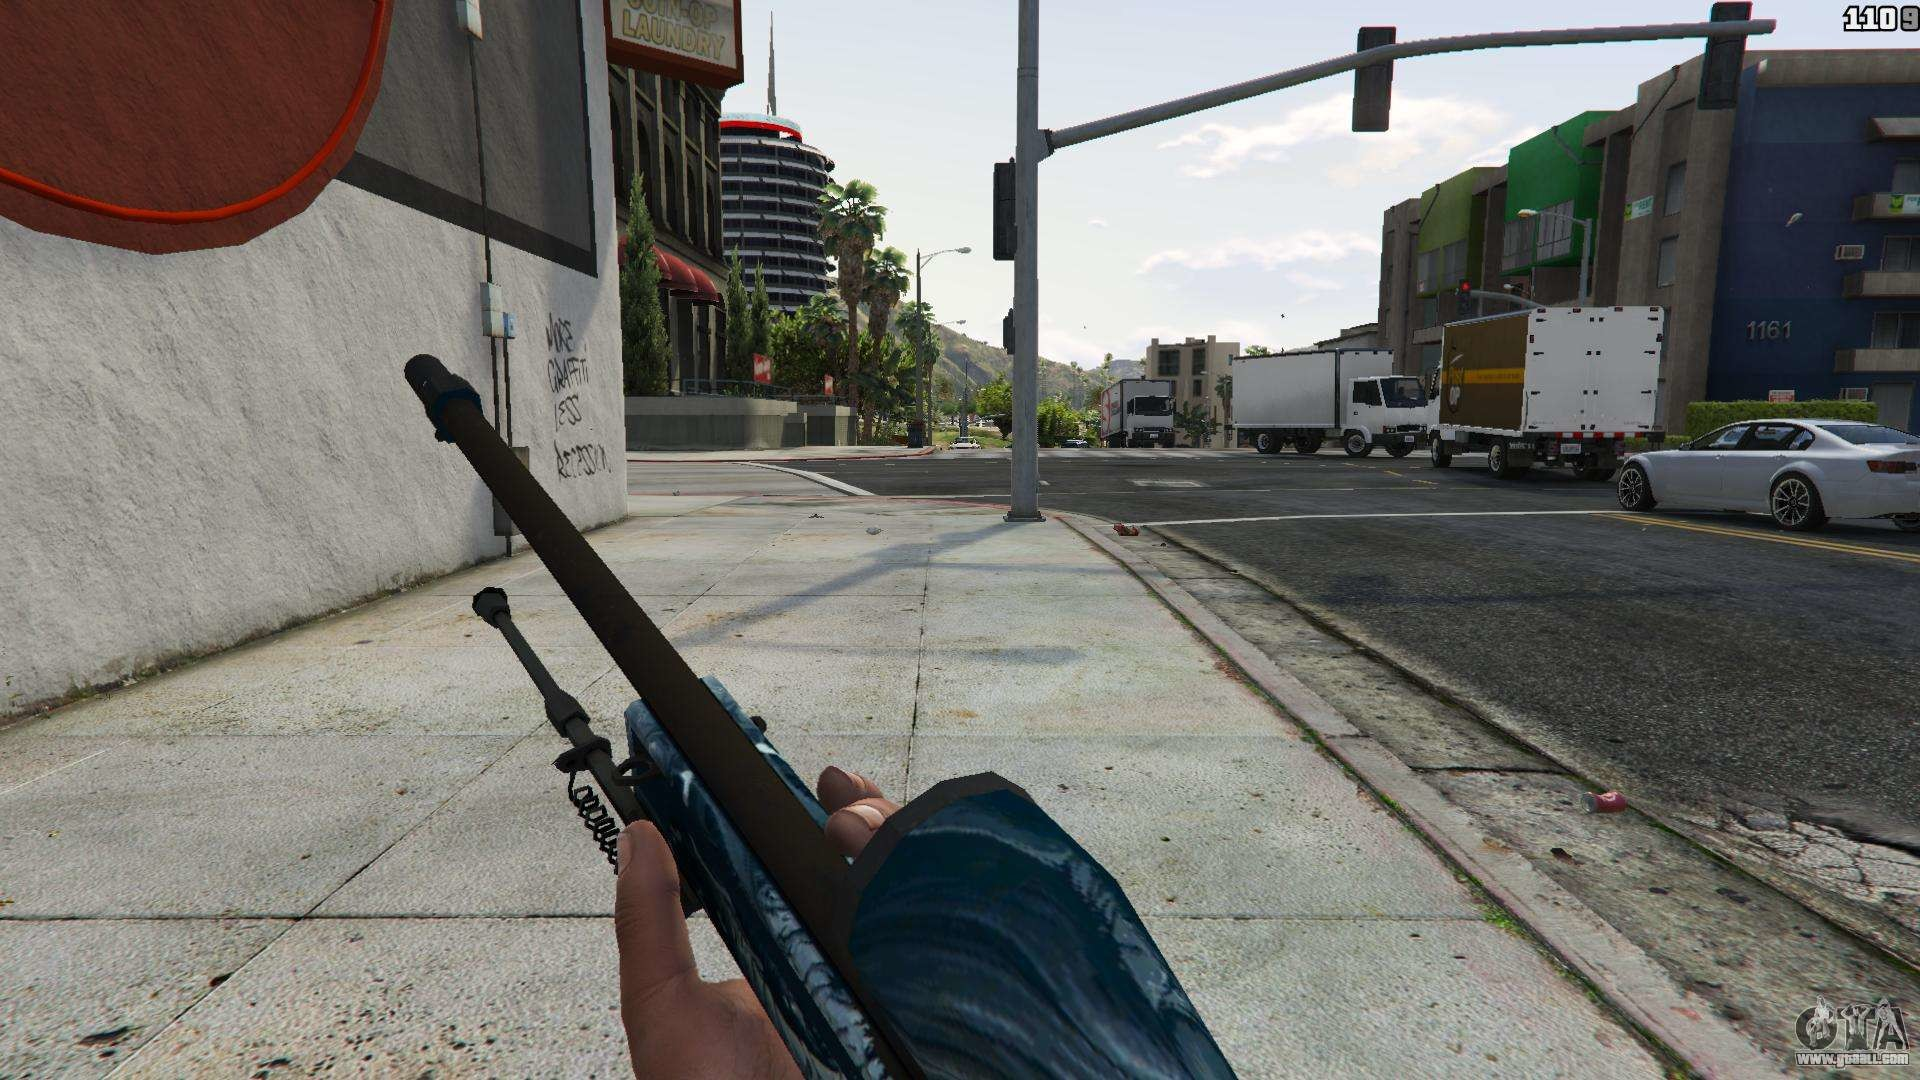 1920x1080 Hyper Beast Edition: AWP for GTA 5